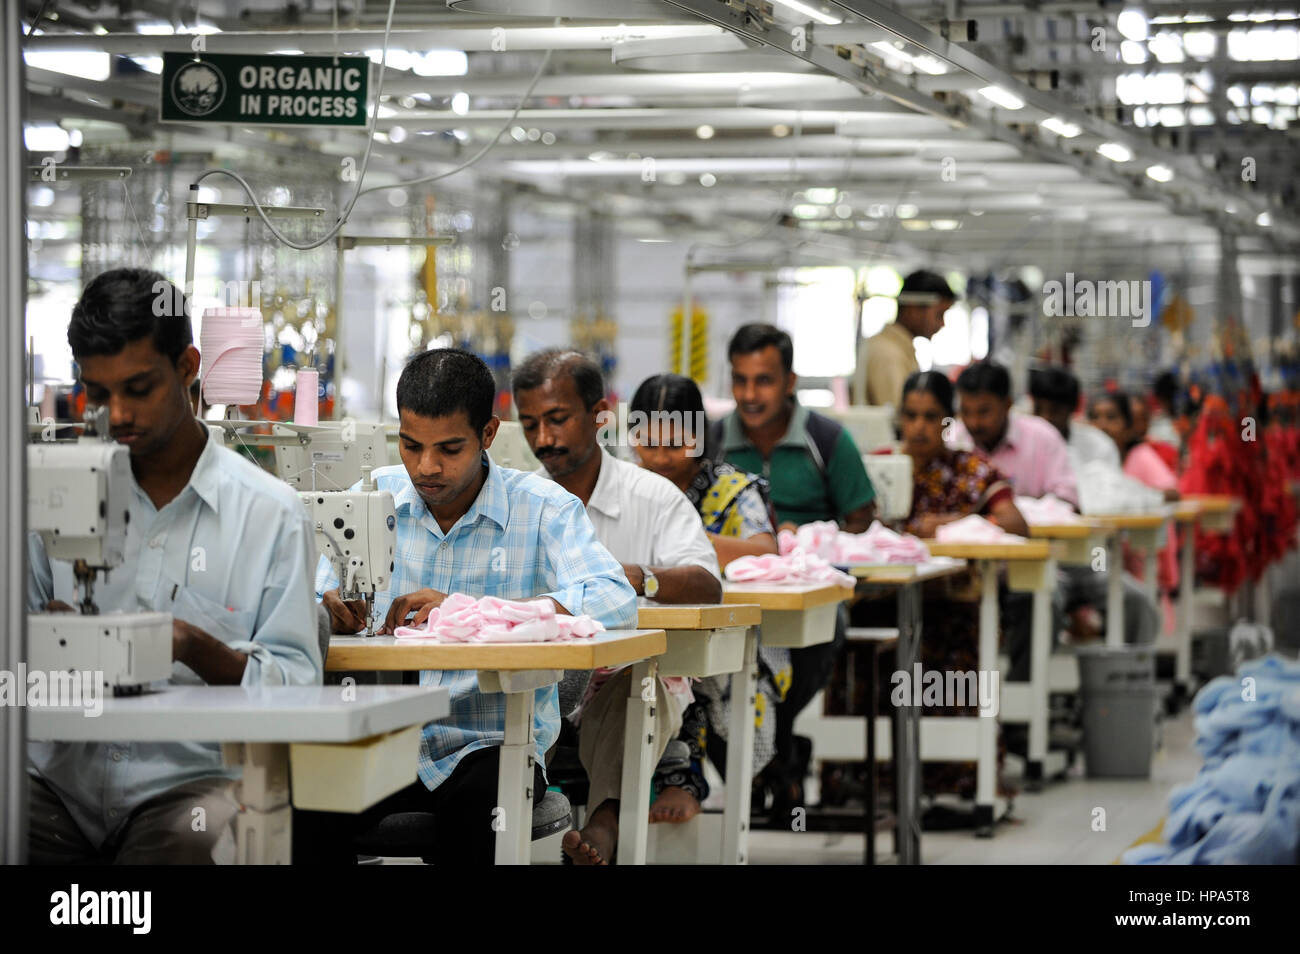 INDIA Tirupur , fair trade textile units , Century Apparels produces organic and fairtrade garments for Export  - Stock Image